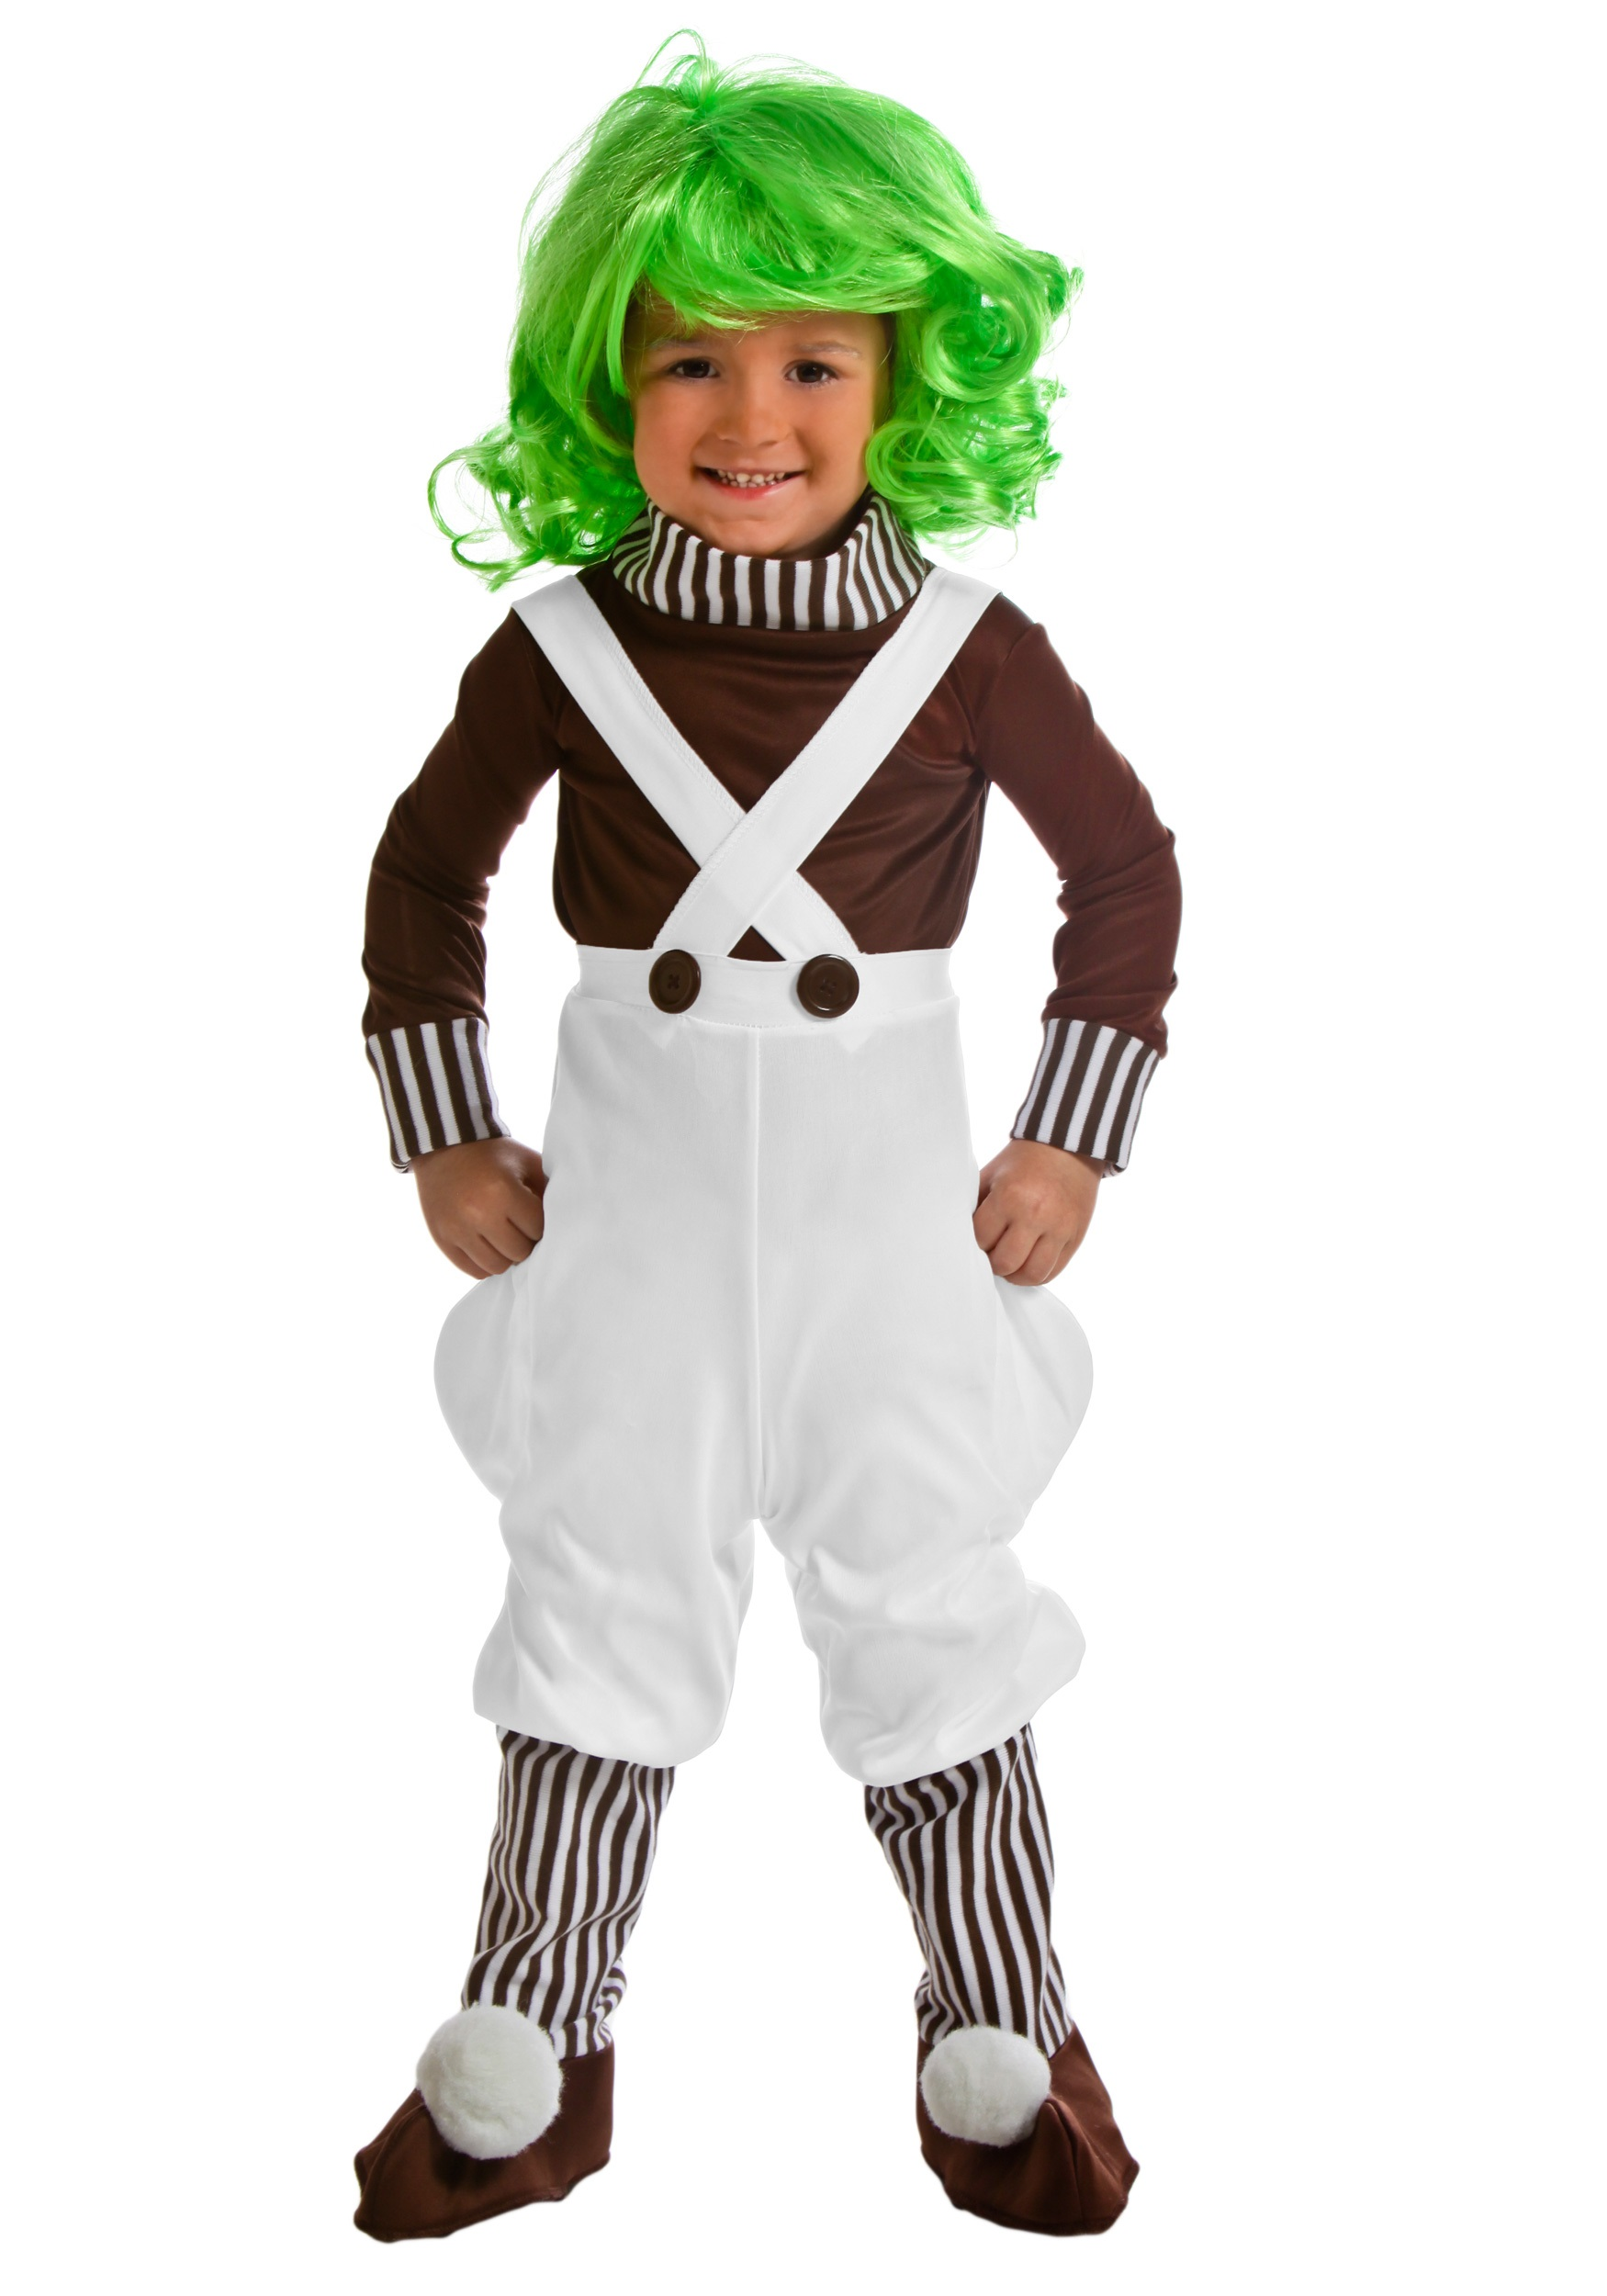 Toddler Chocolate Factory Worker Costume  sc 1 st  Halloween Costumes & Tots Chocolate Factory Worker Costume